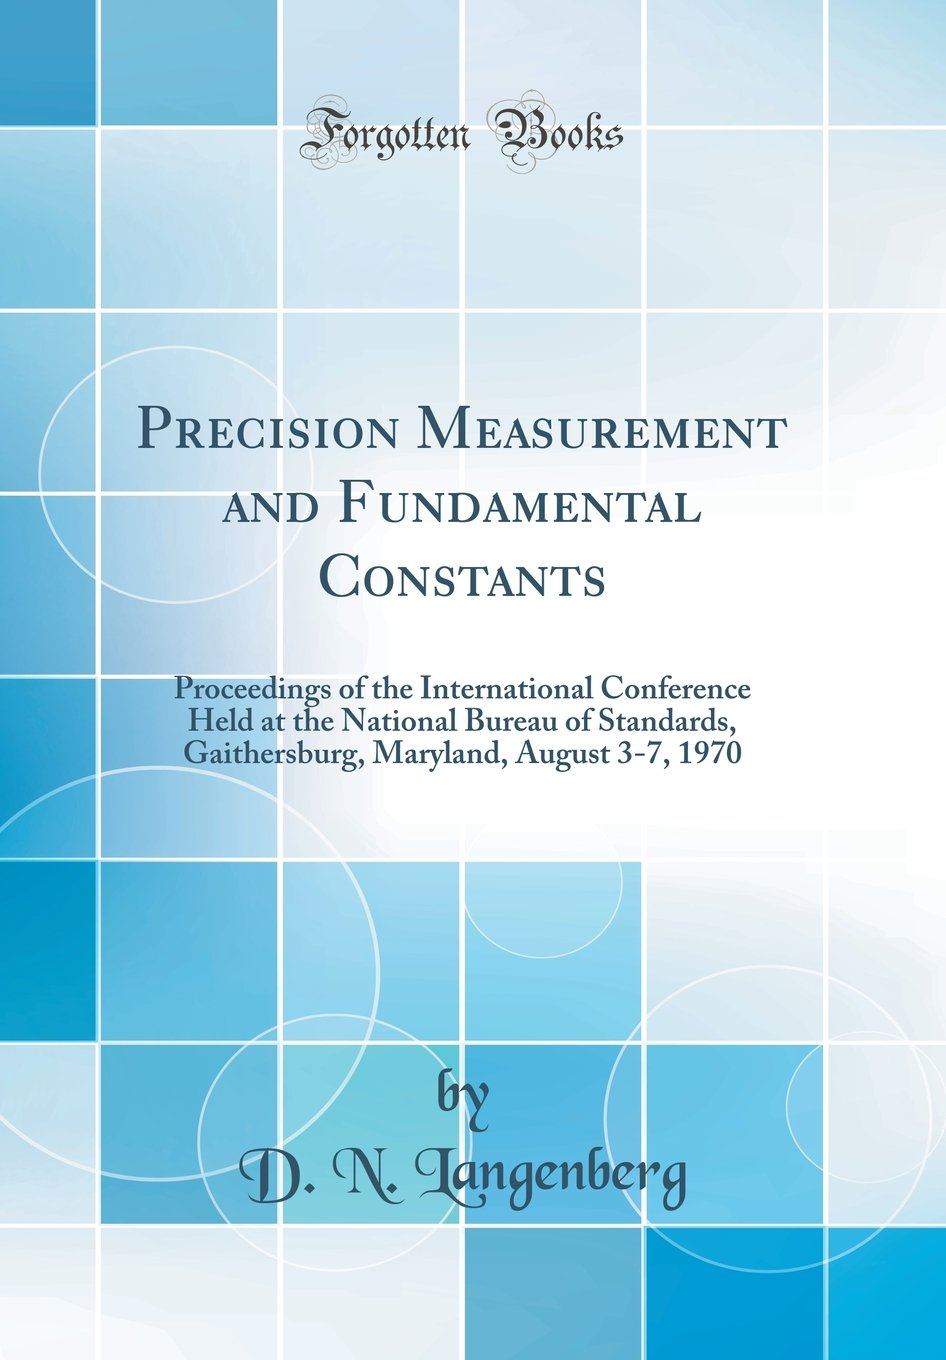 Precision Measurement and Fundamental Constants: Proceedings of the International Conference Held at the National Bureau of Standards, Gaithersburg, Maryland, August 3-7, 1970 (Classic Reprint) pdf epub